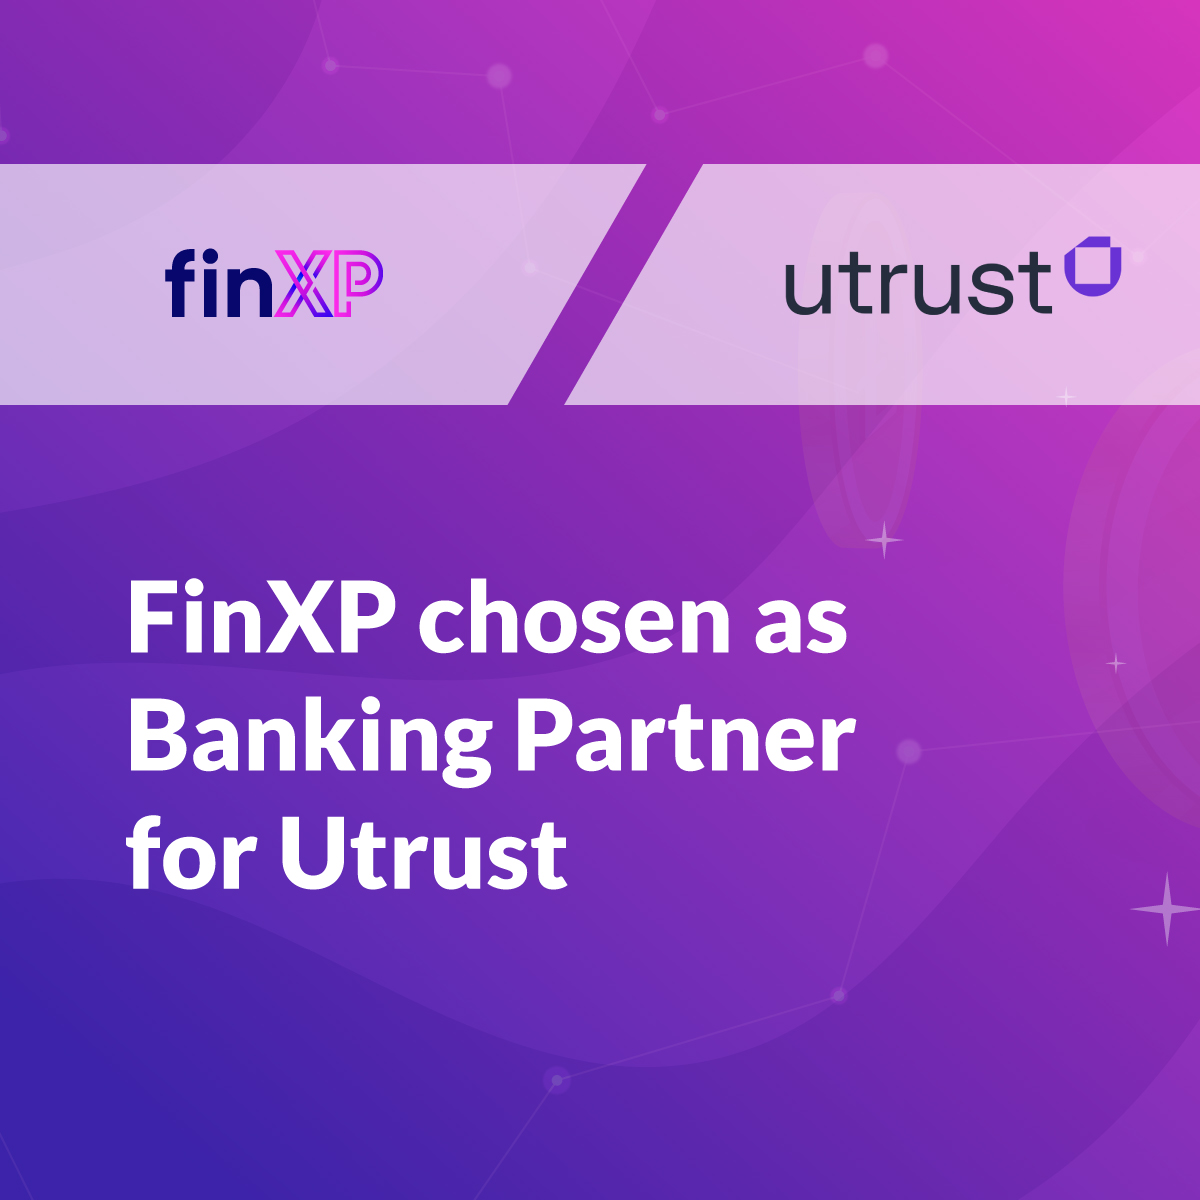 FinXP chosen as Banking Partner for Crypto Payment Solution Utrust